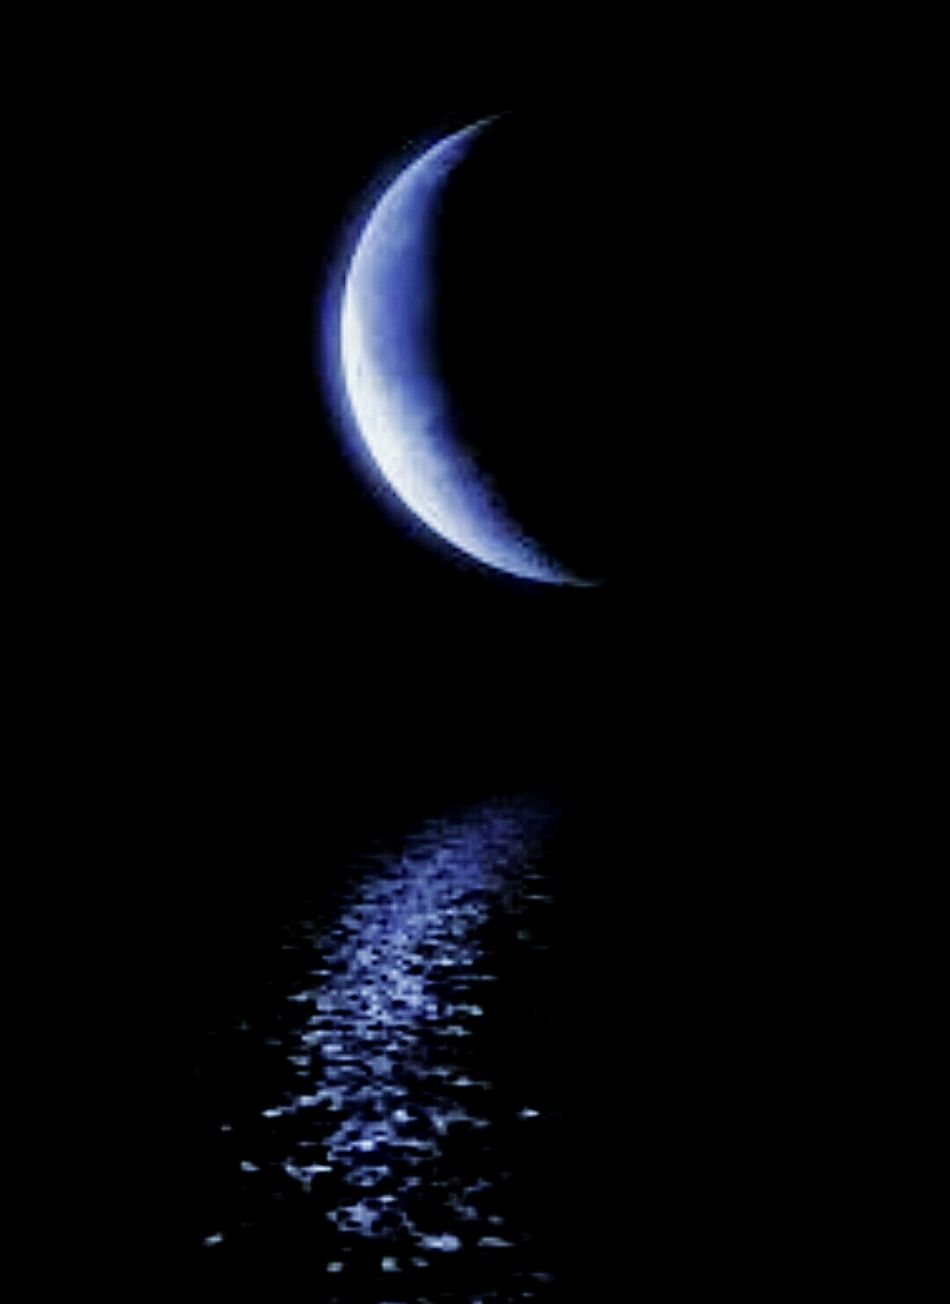 Night Dark Nature No People Beauty In Nature Moon Astronomy Outdoors Reflection Photography Arts Culture And Entertainment Check This Out Black Scratch Artwork EyeEmNewHere Backgrounds Tranquility Sky Close-up Art Glowing Moonlight Moon Planetary Moon Purity Water Fragility